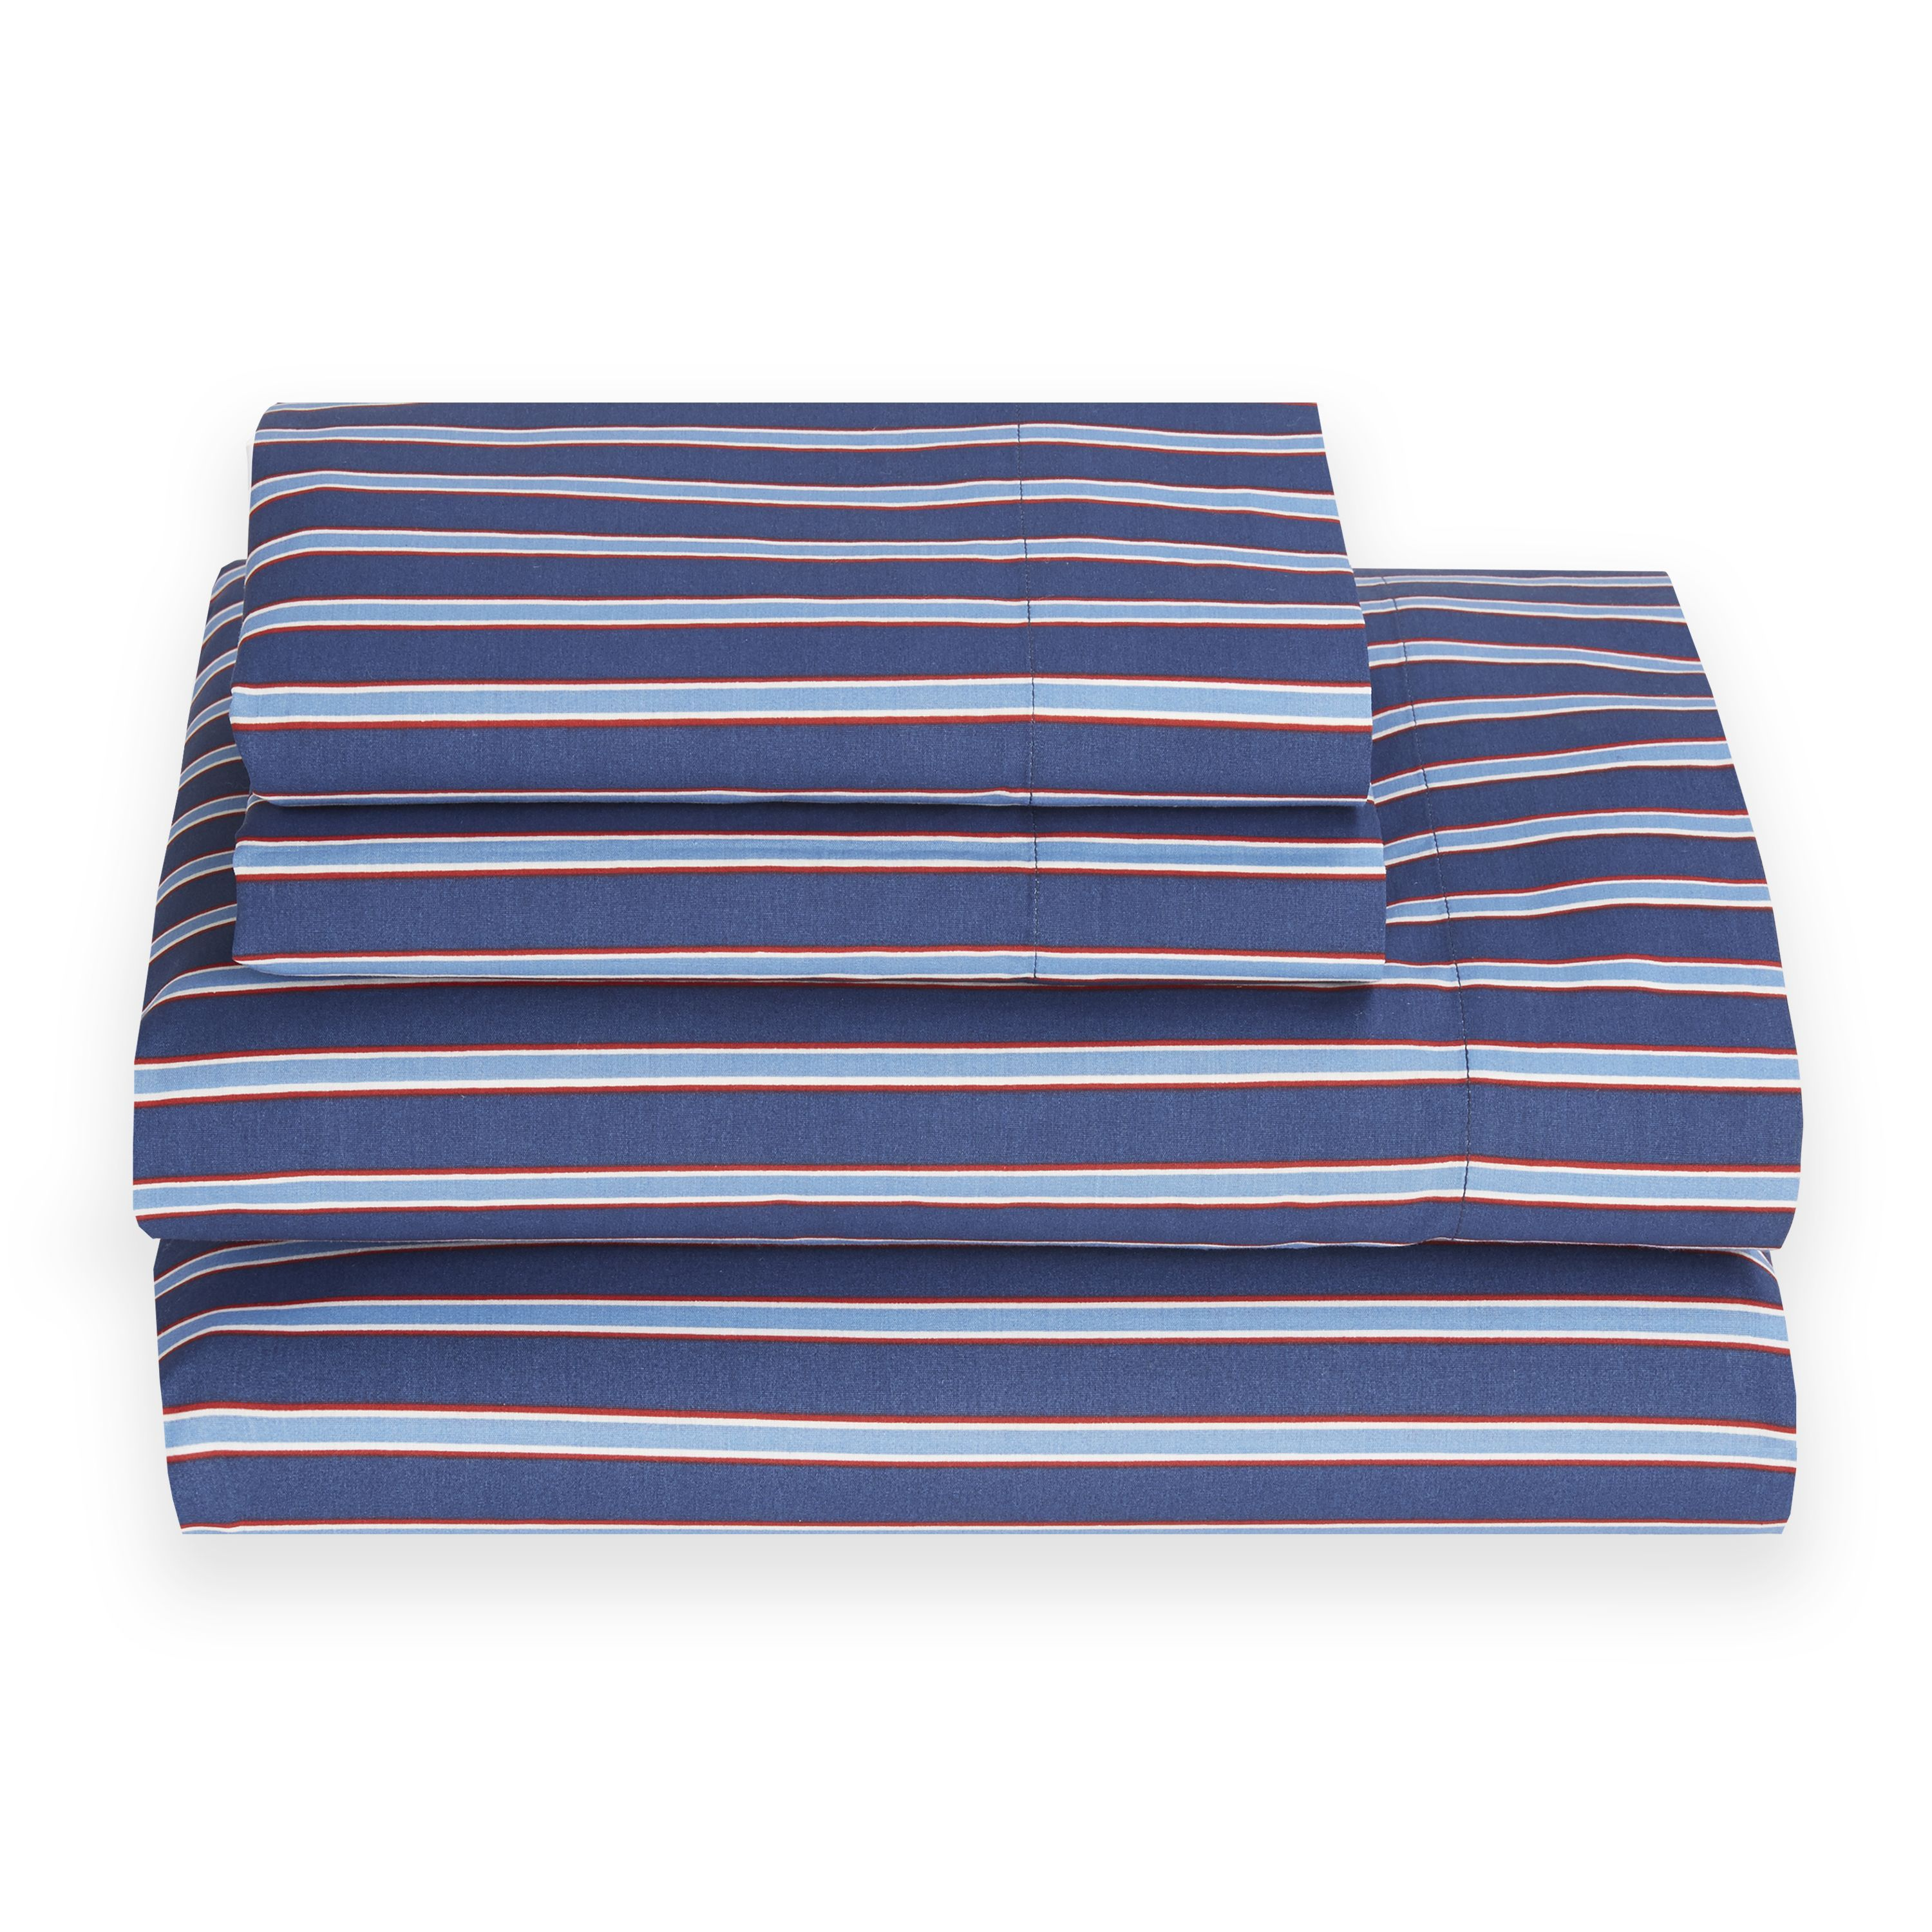 Bold Stripes On A Dark Blue Background Make These Tommy Hilfiger Sheets Ideal For Any Decor Made Of Soft Cotton Polyester Blend Are